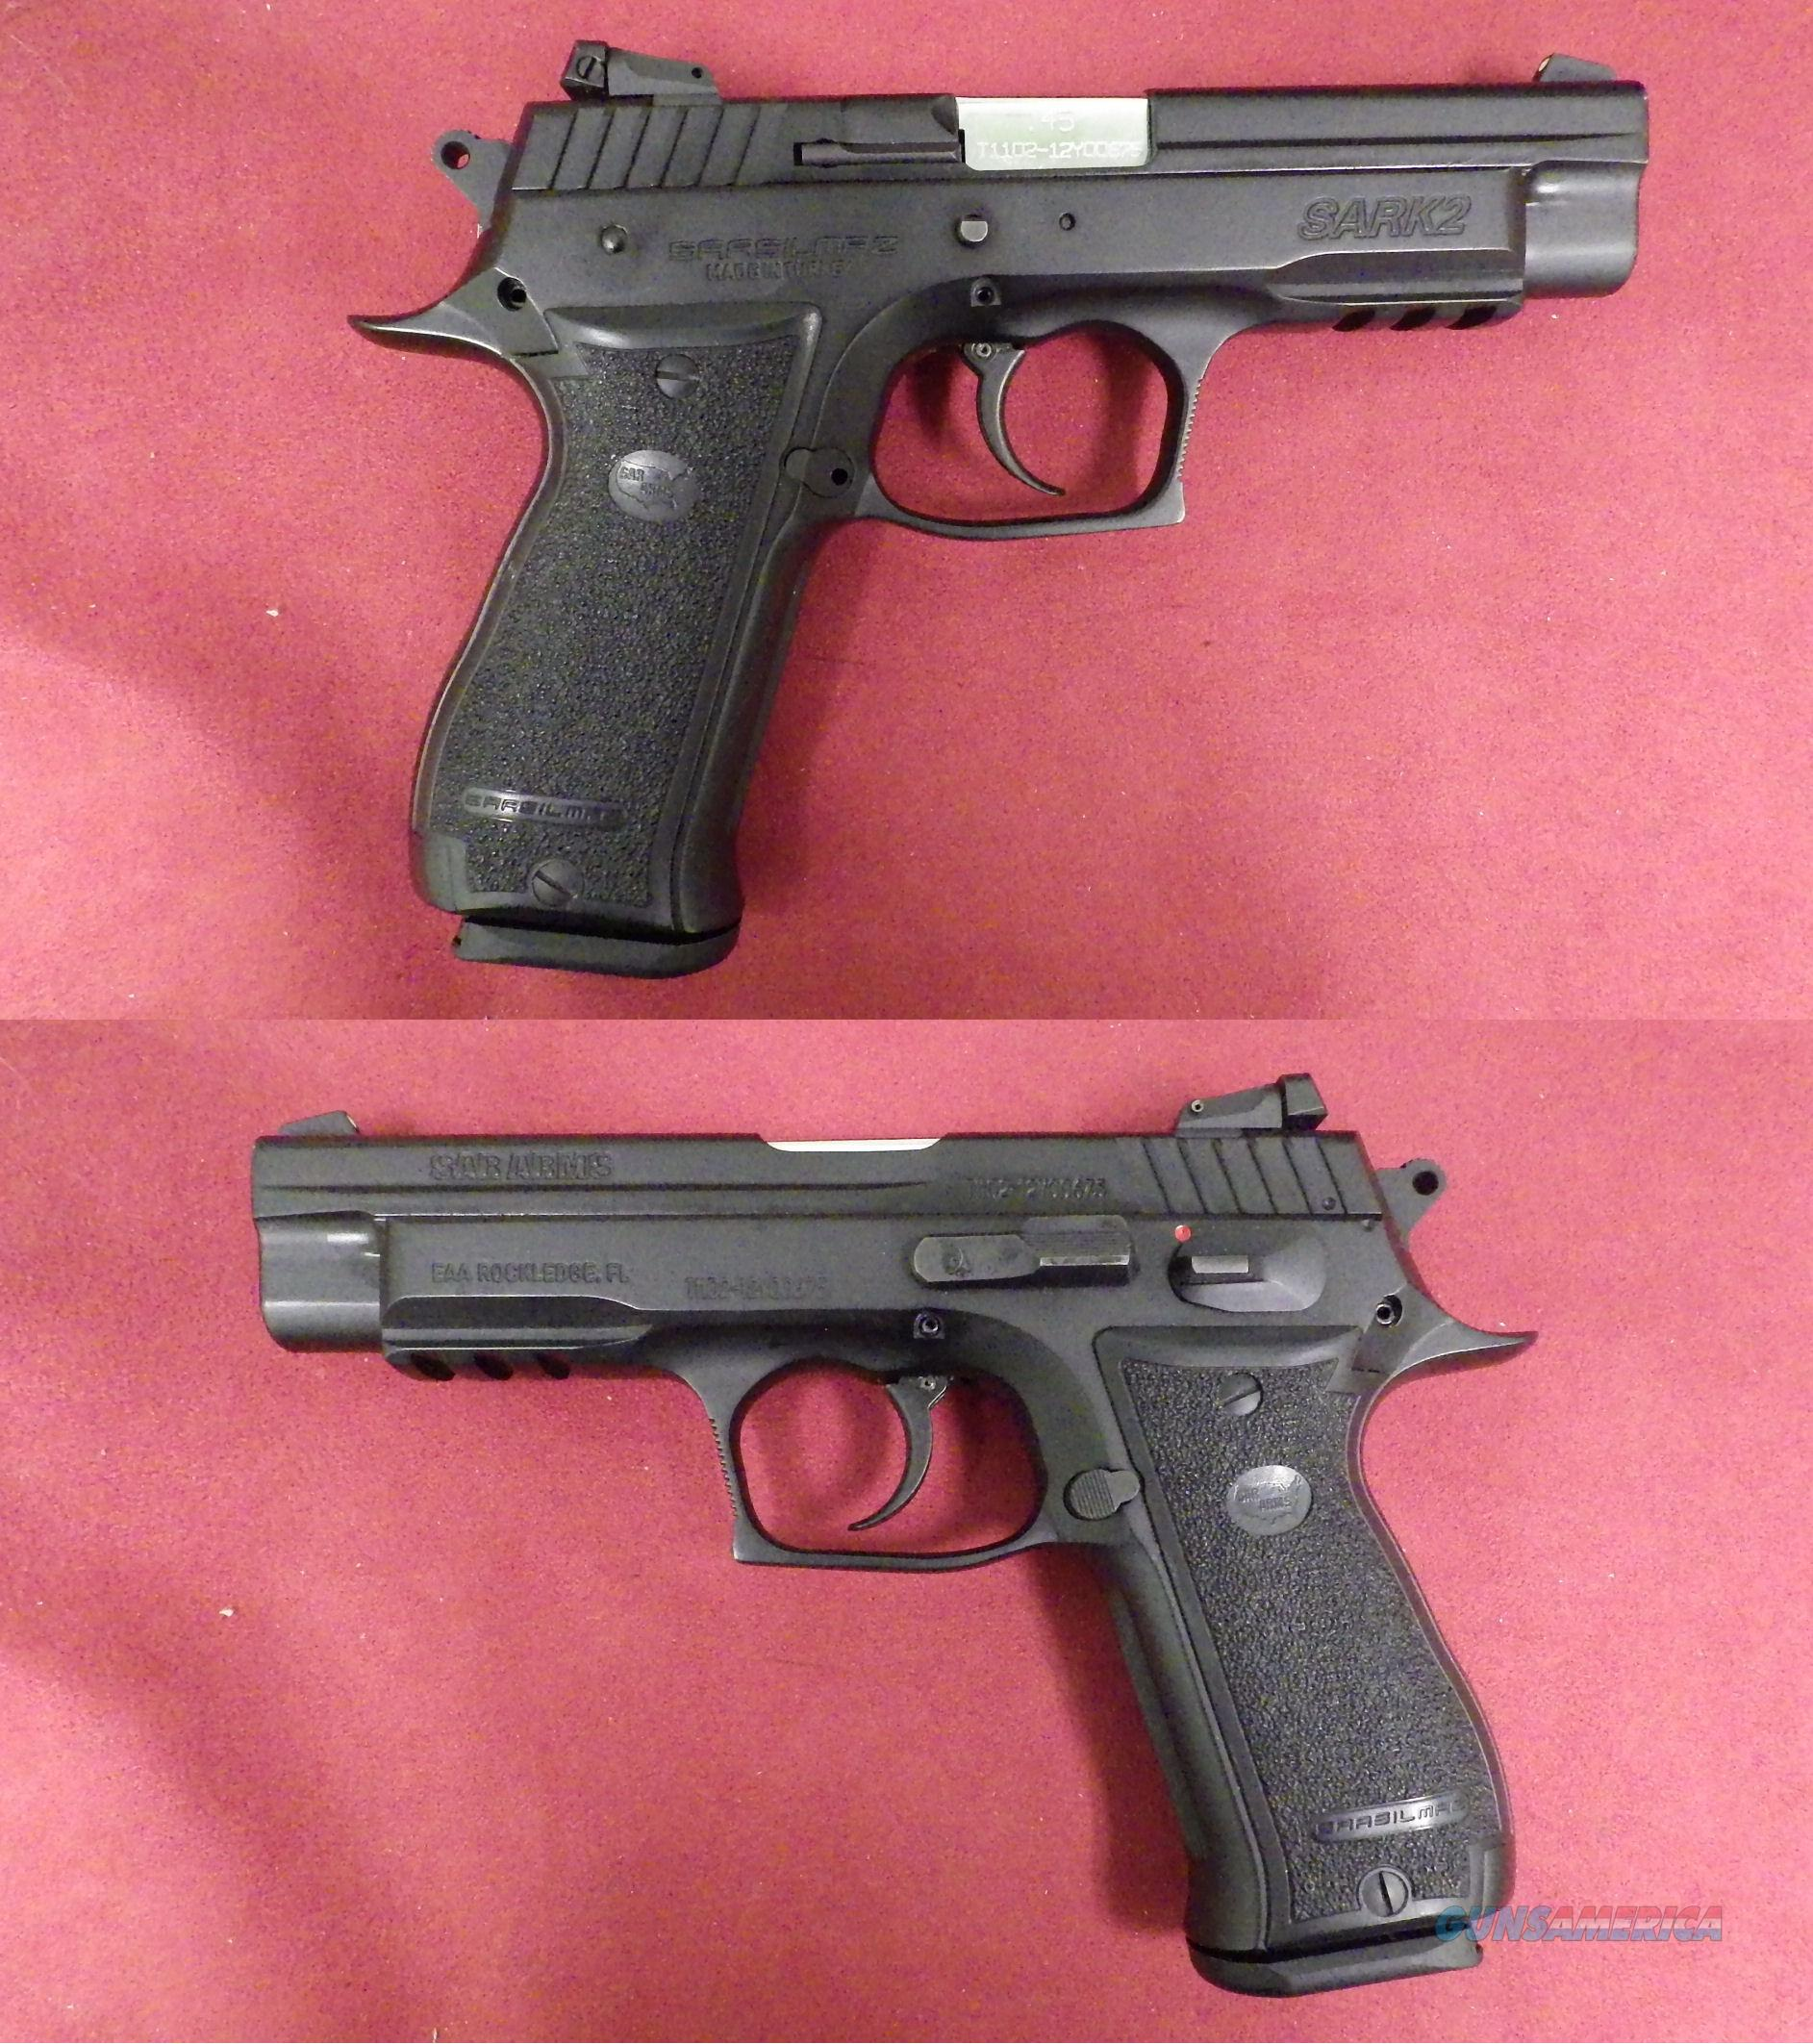 SarArms K2 .45ACP  *MUST CALL*  Guns > Pistols > EAA Pistols > Other